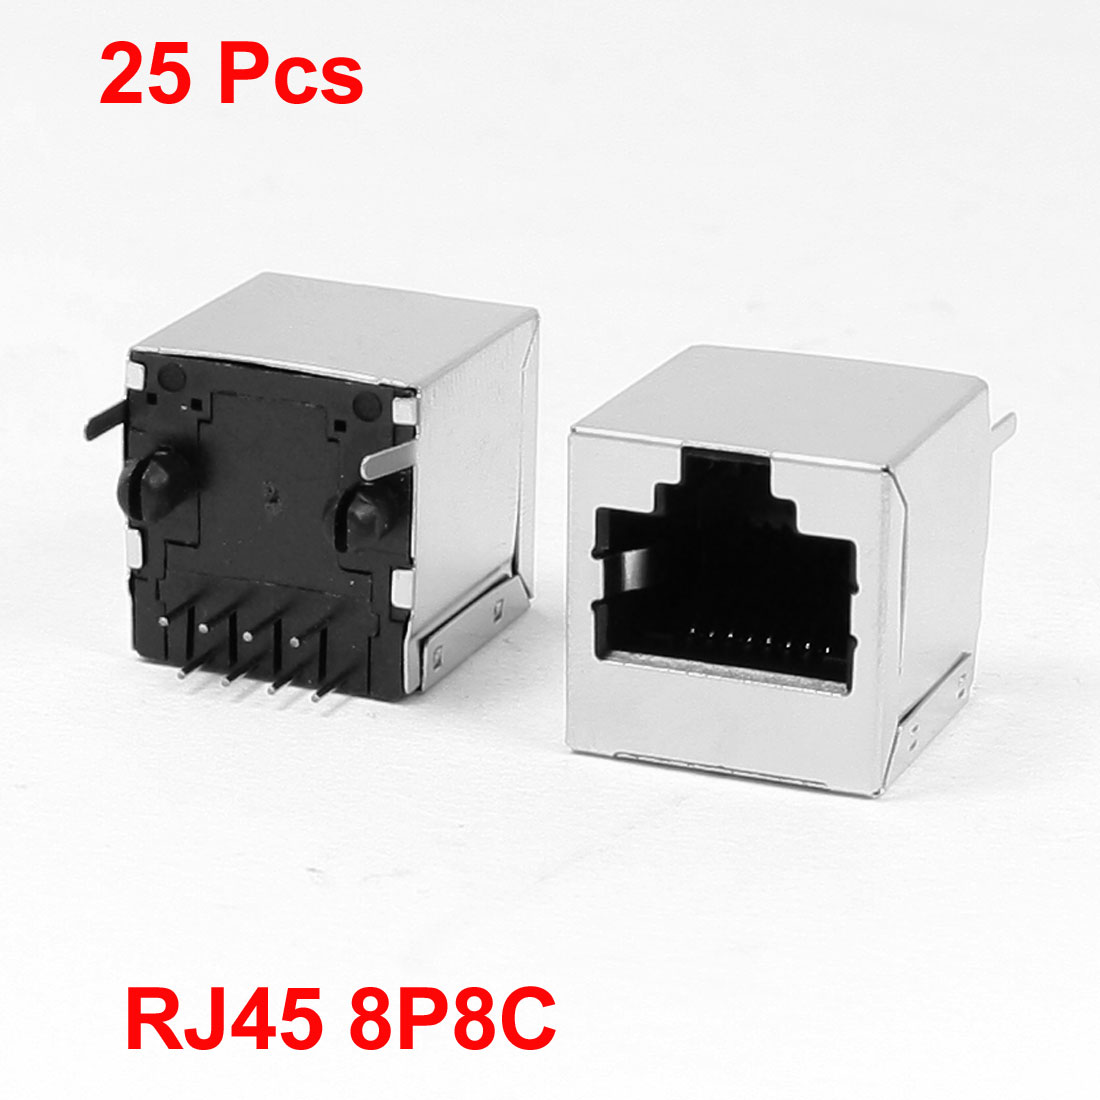 25 Pcs 8P8C RJ45 PCB Jack Vertical Female Connector